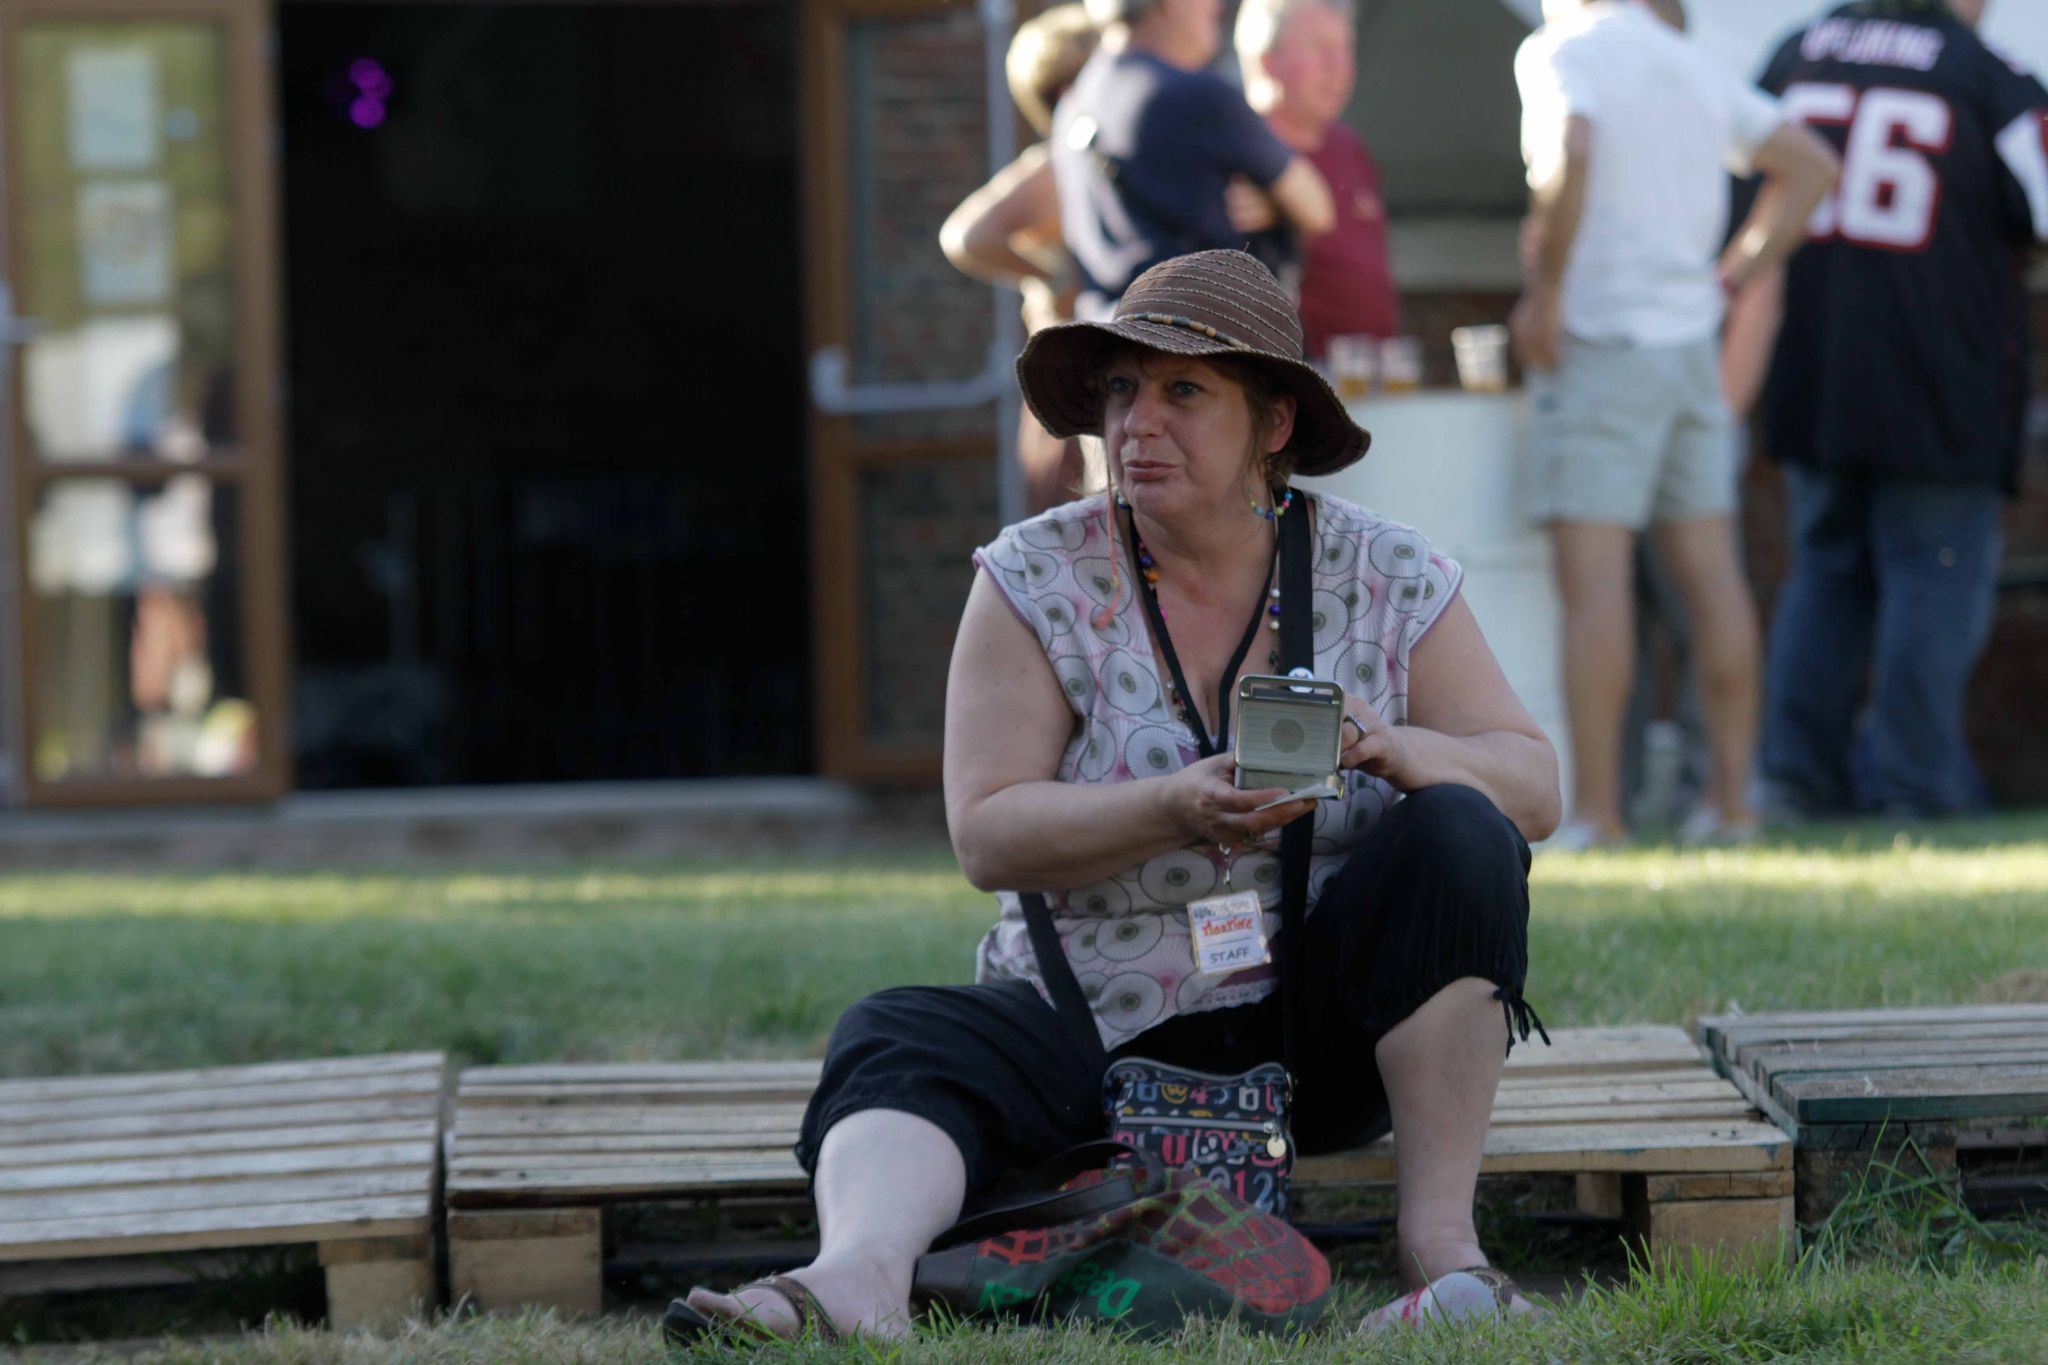 Ambiance-DTGFestival-2012-222